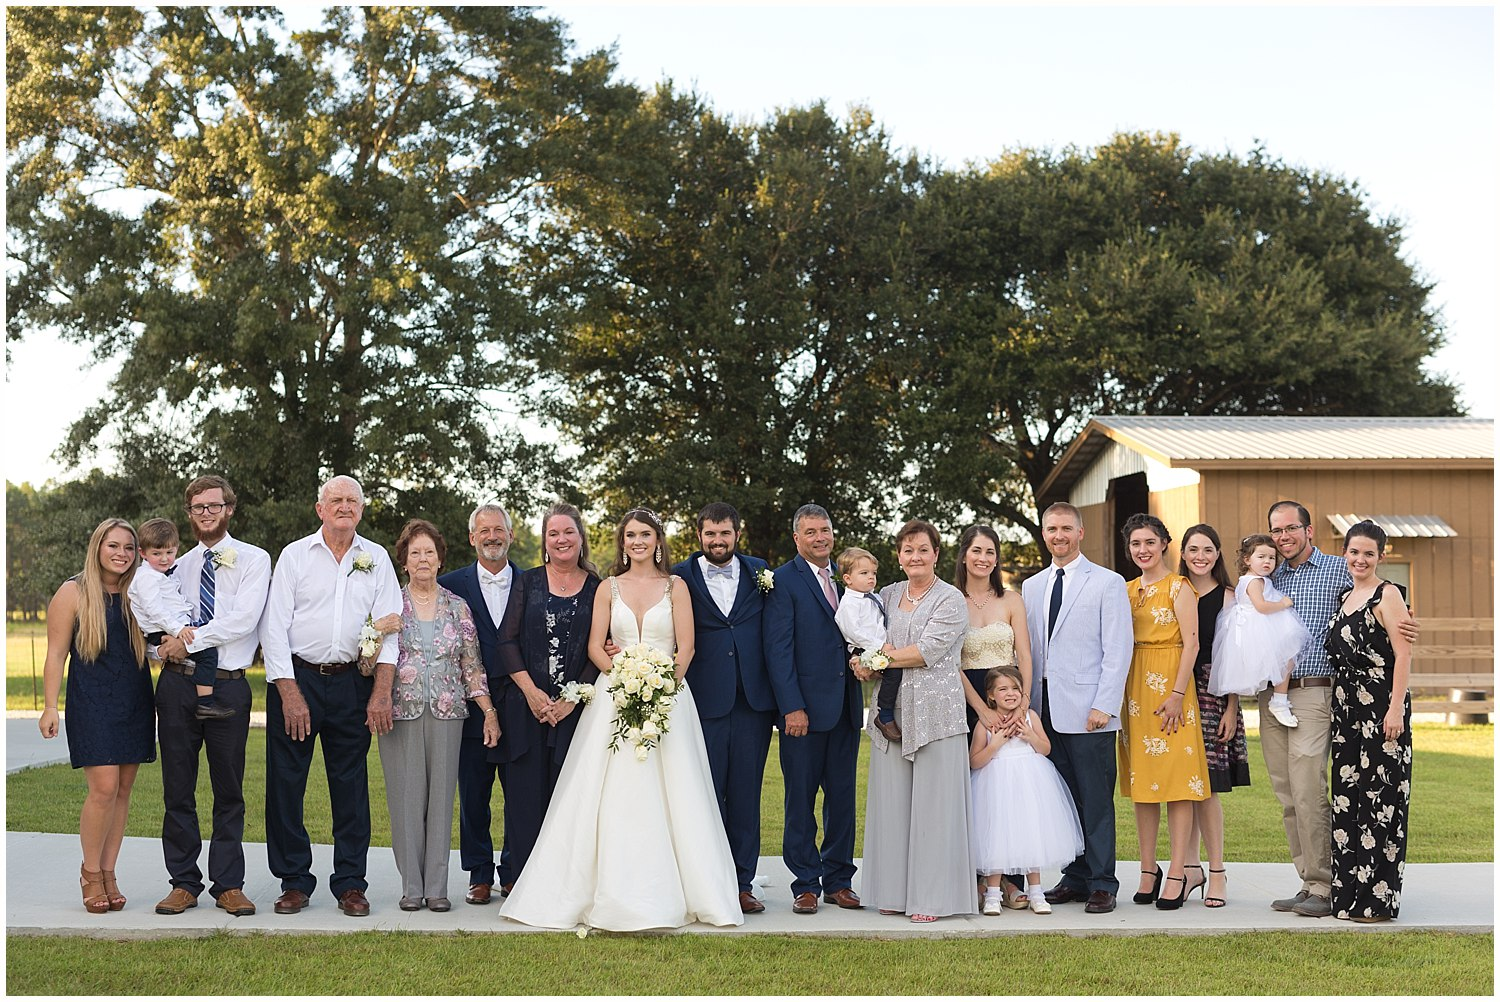 Kiln, MS wedding photographer family photos